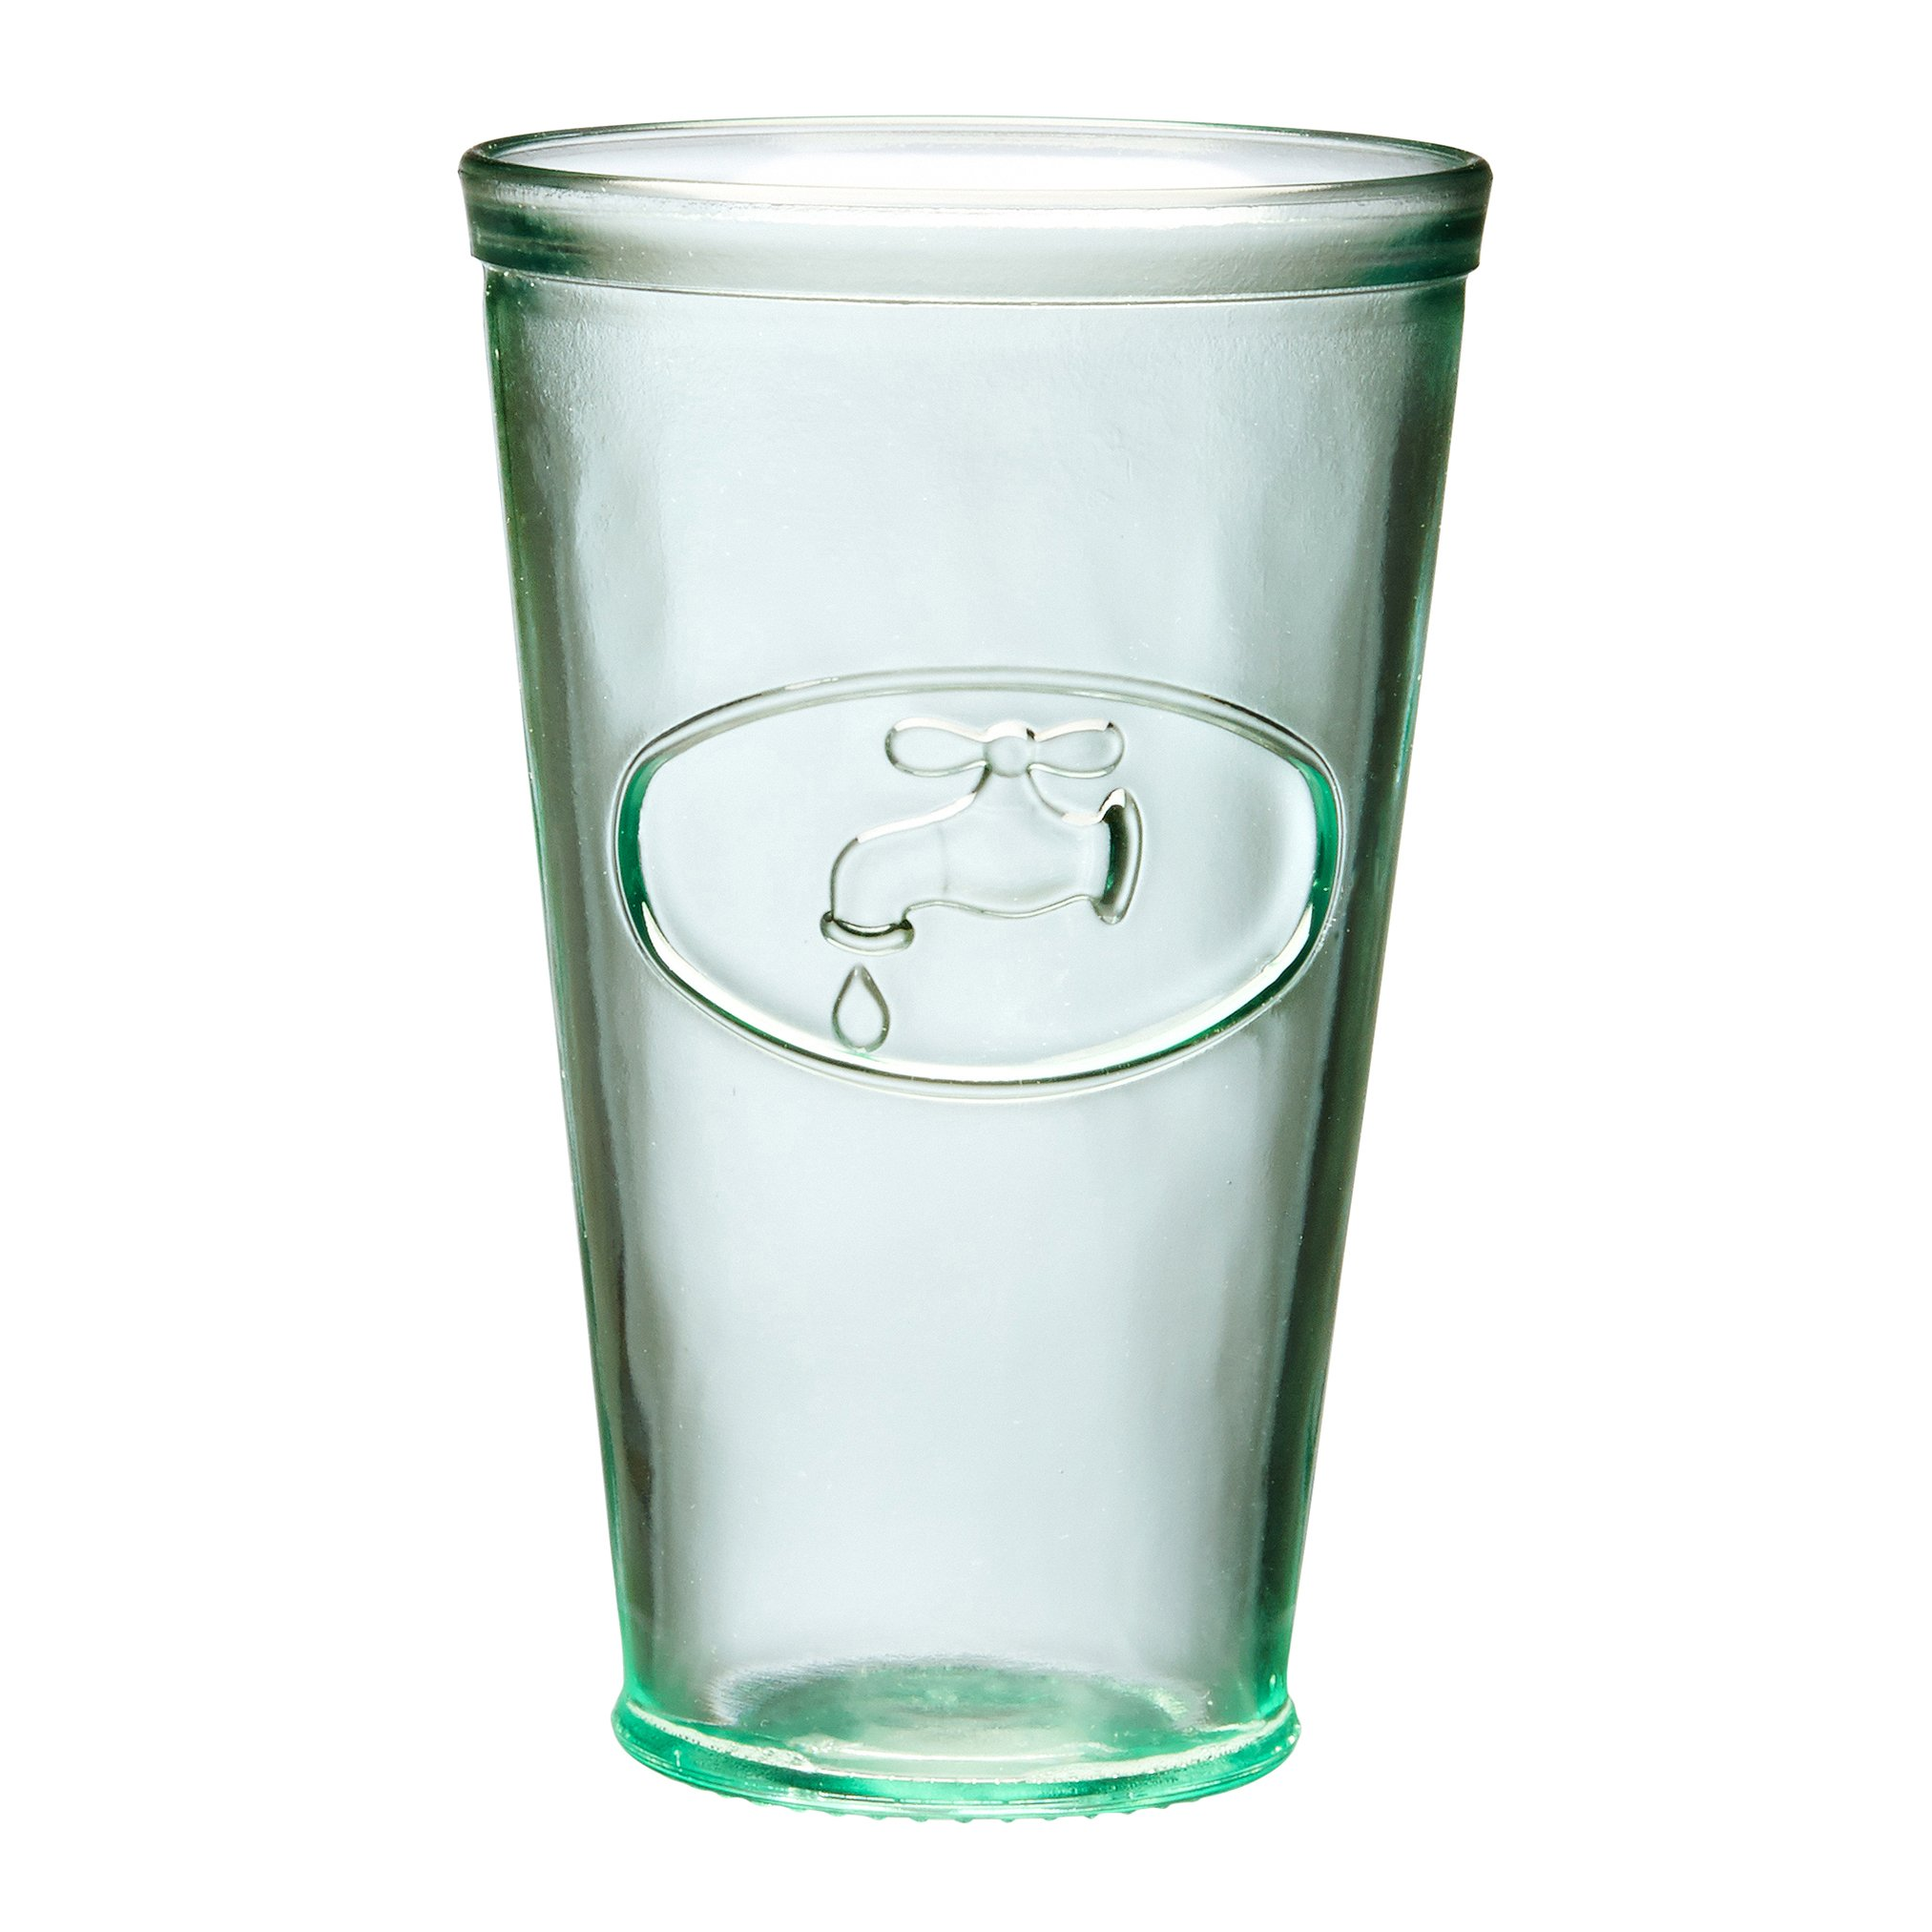 Amici Water Tap Collection Hiball Glasses, 16 oz - Set of 6